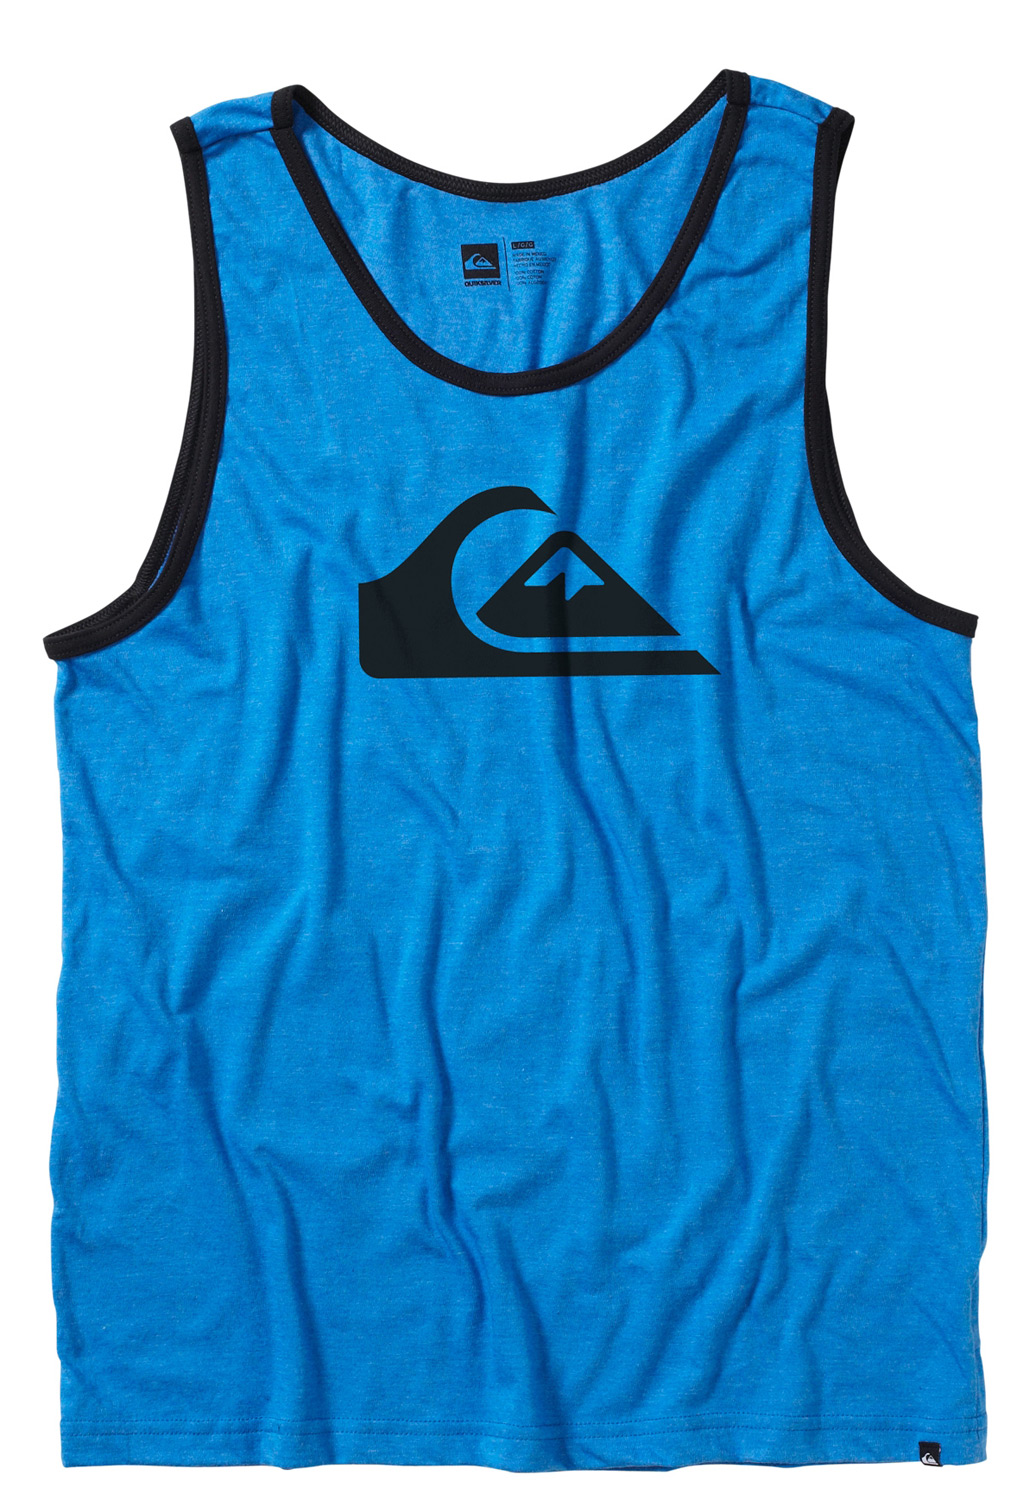 Surf Key Features of the Quiksilver Mountain Wave Tank: 22 single s ringspun jersey. Contrast ribbed binding. SOLIDS: 100% cotton. HEATHERS: 50% cotton, 50% polyester. Slim fit. - $13.95